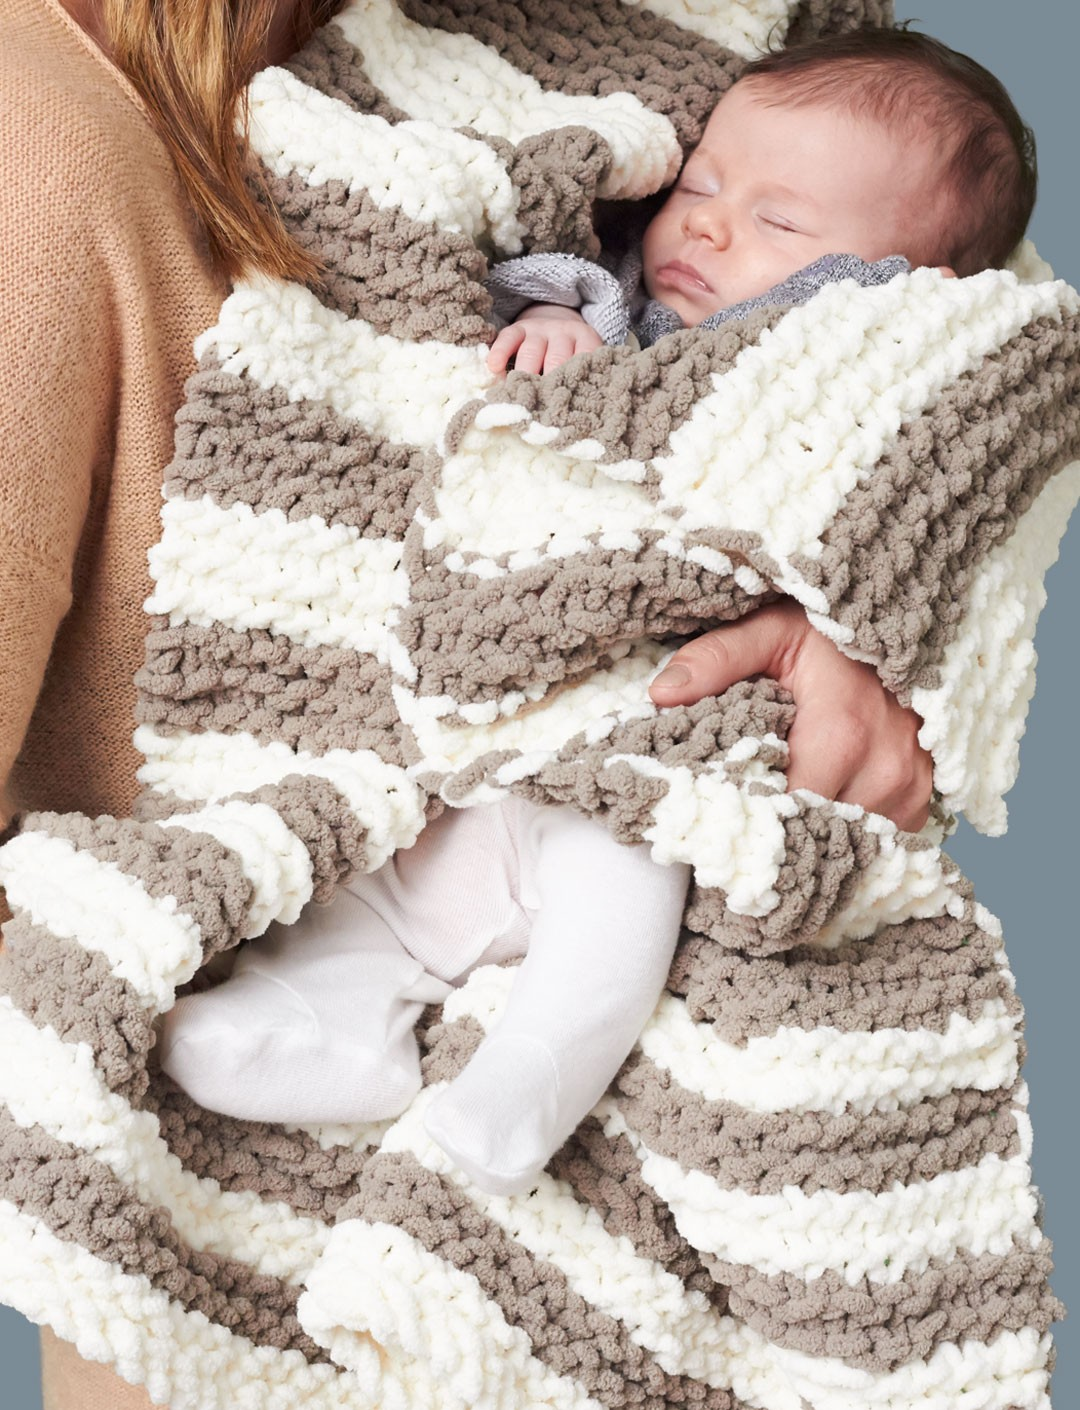 Bernat Baby Blanket Yarn Knitting Patterns : Bernat In A Wink Baby Blanket, Knit Pattern Yarnspirations